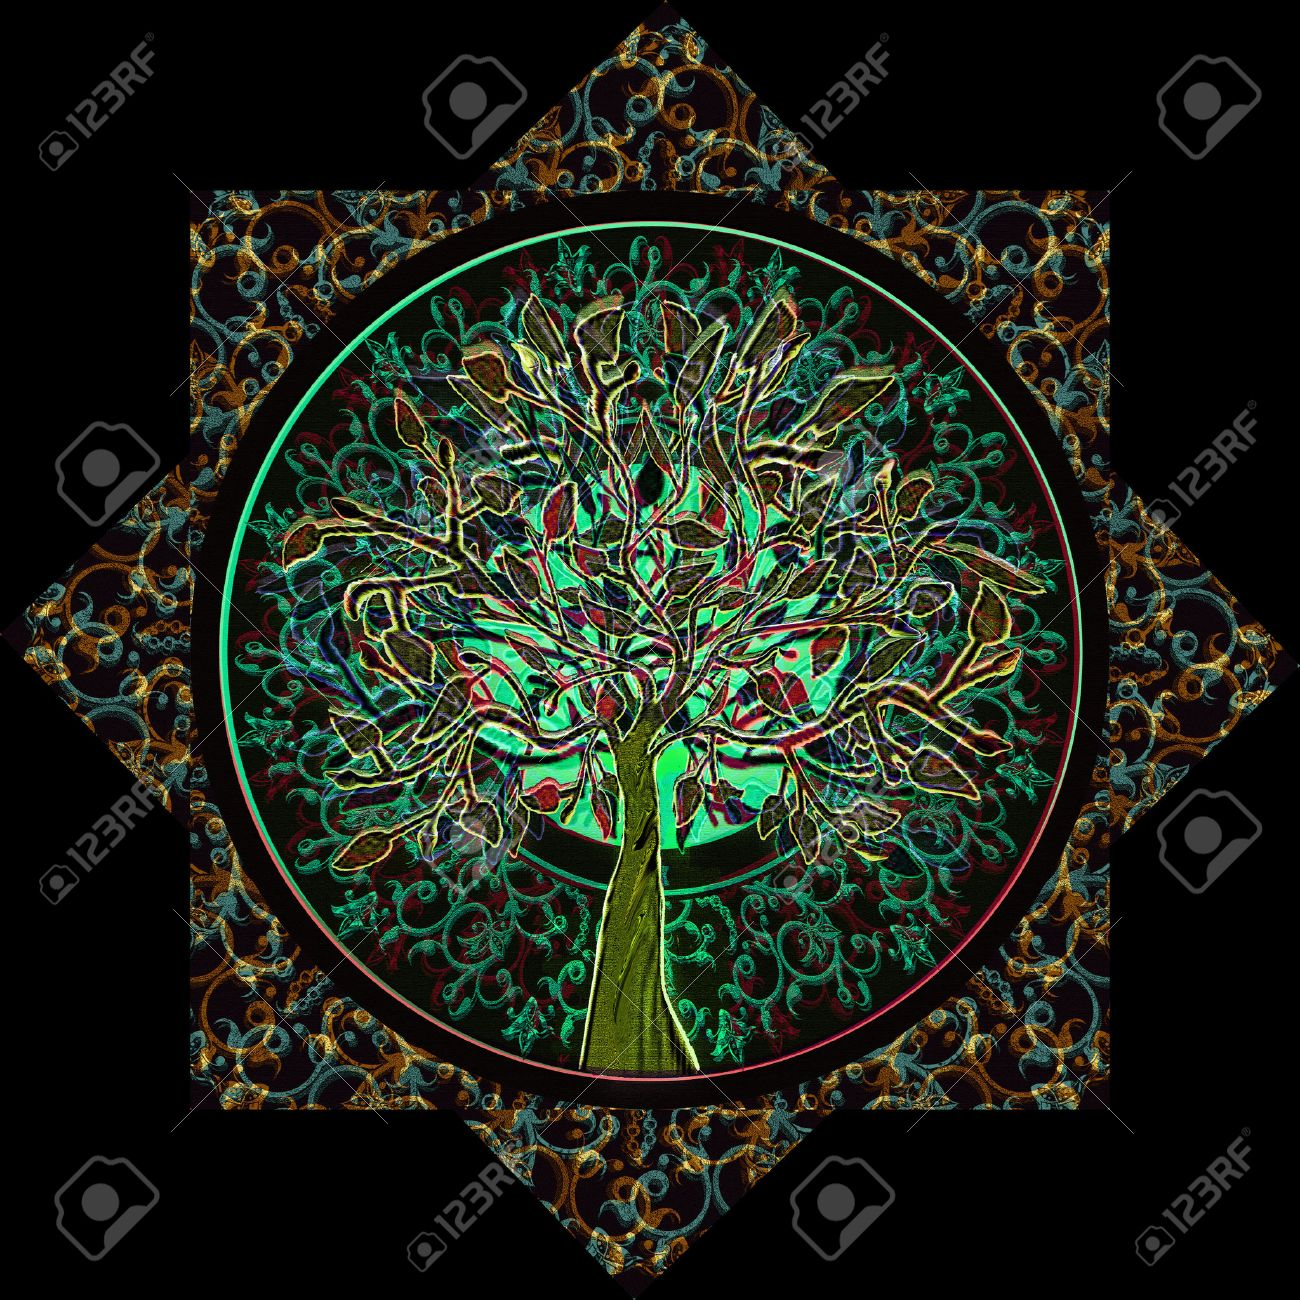 Tree Of Life In Ornate Star Frame Stock Photo Picture And Royalty